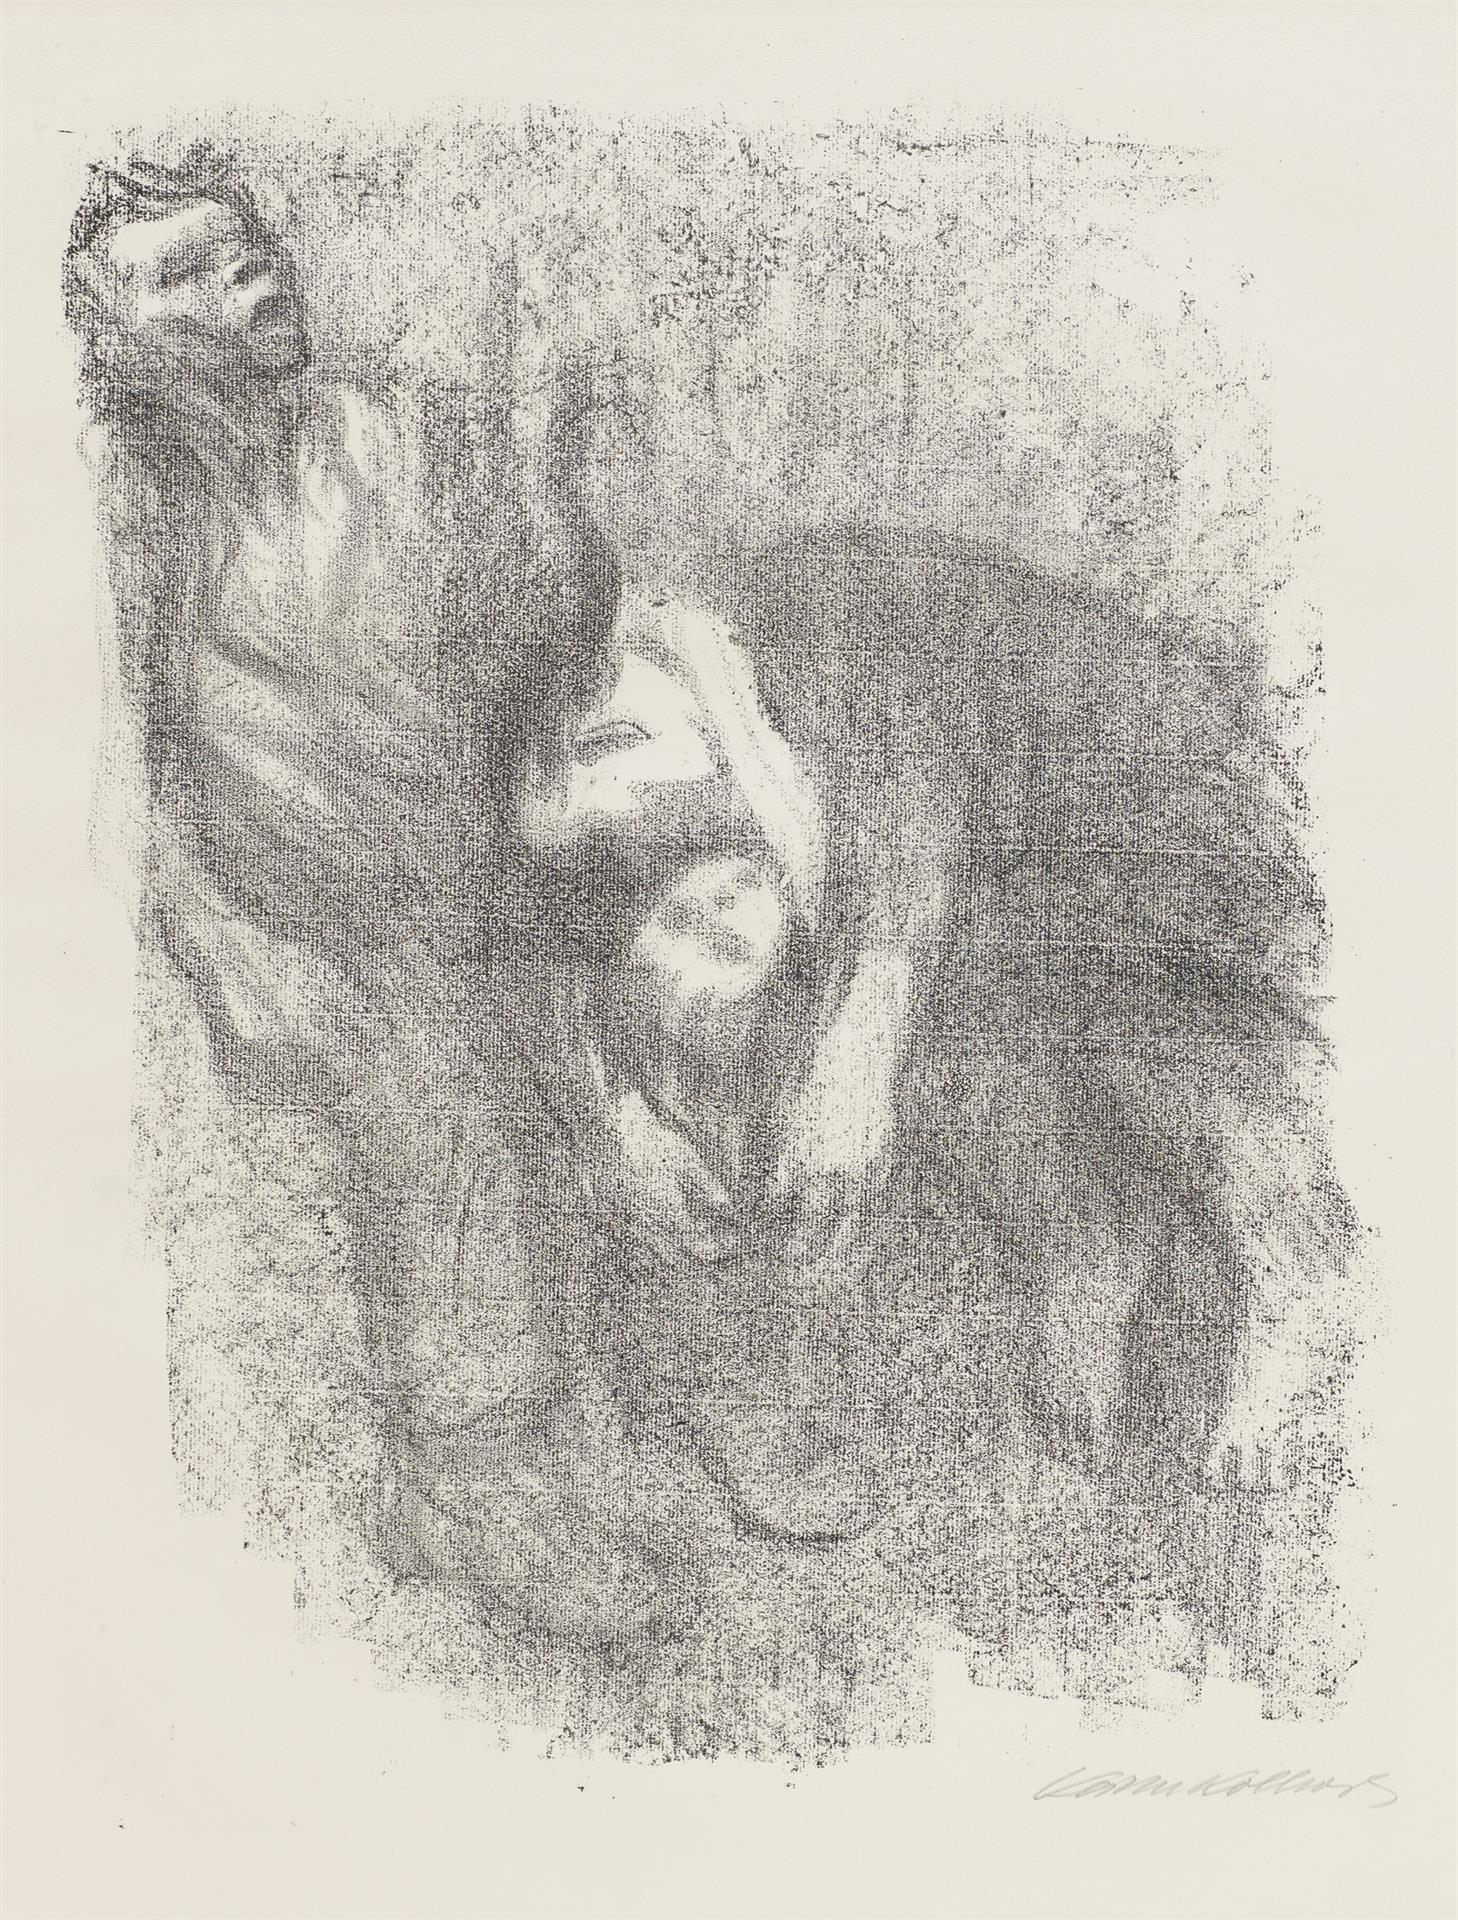 Käthe Kollwitz, Death in the Water, sheet 7 of the series »Death«, 1934, crayon lithograph, Kn 268 b, Cologne Kollwitz Collection © Käthe Kollwitz Museum Köln